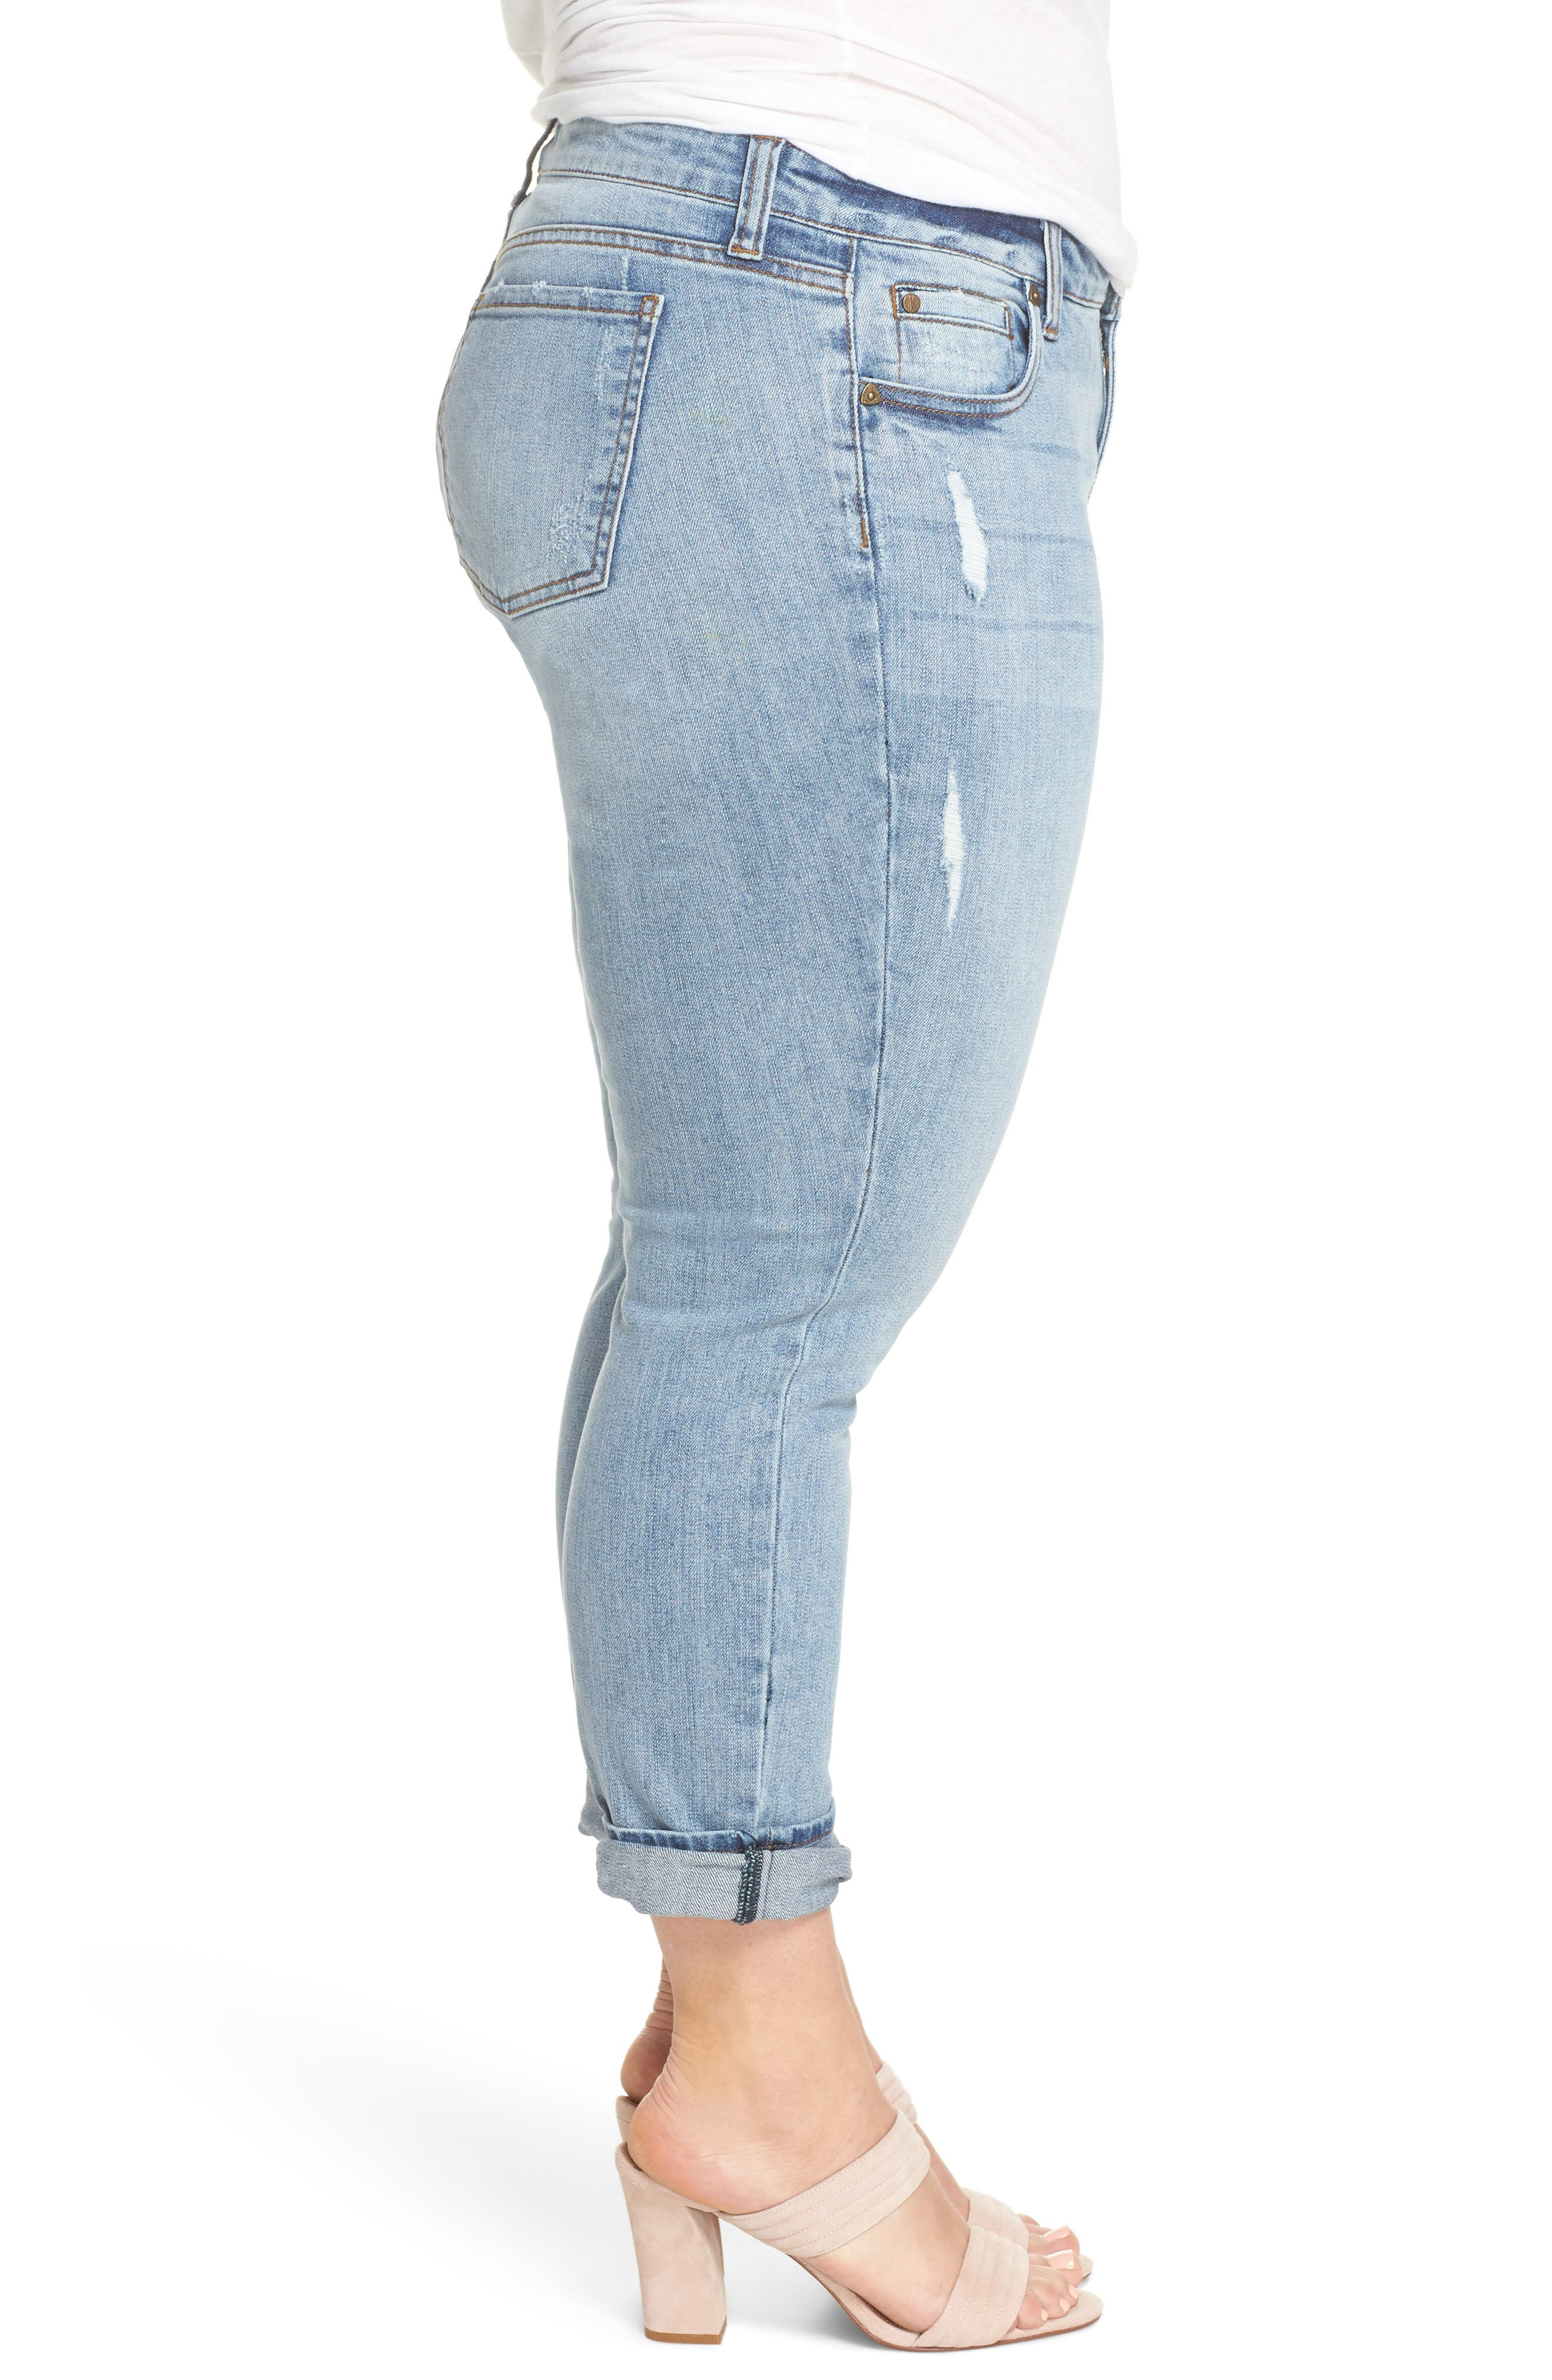 Catherine Distressed Boyfriend Jeans,                             Alternate thumbnail 3, color,                             ANNOUNCE